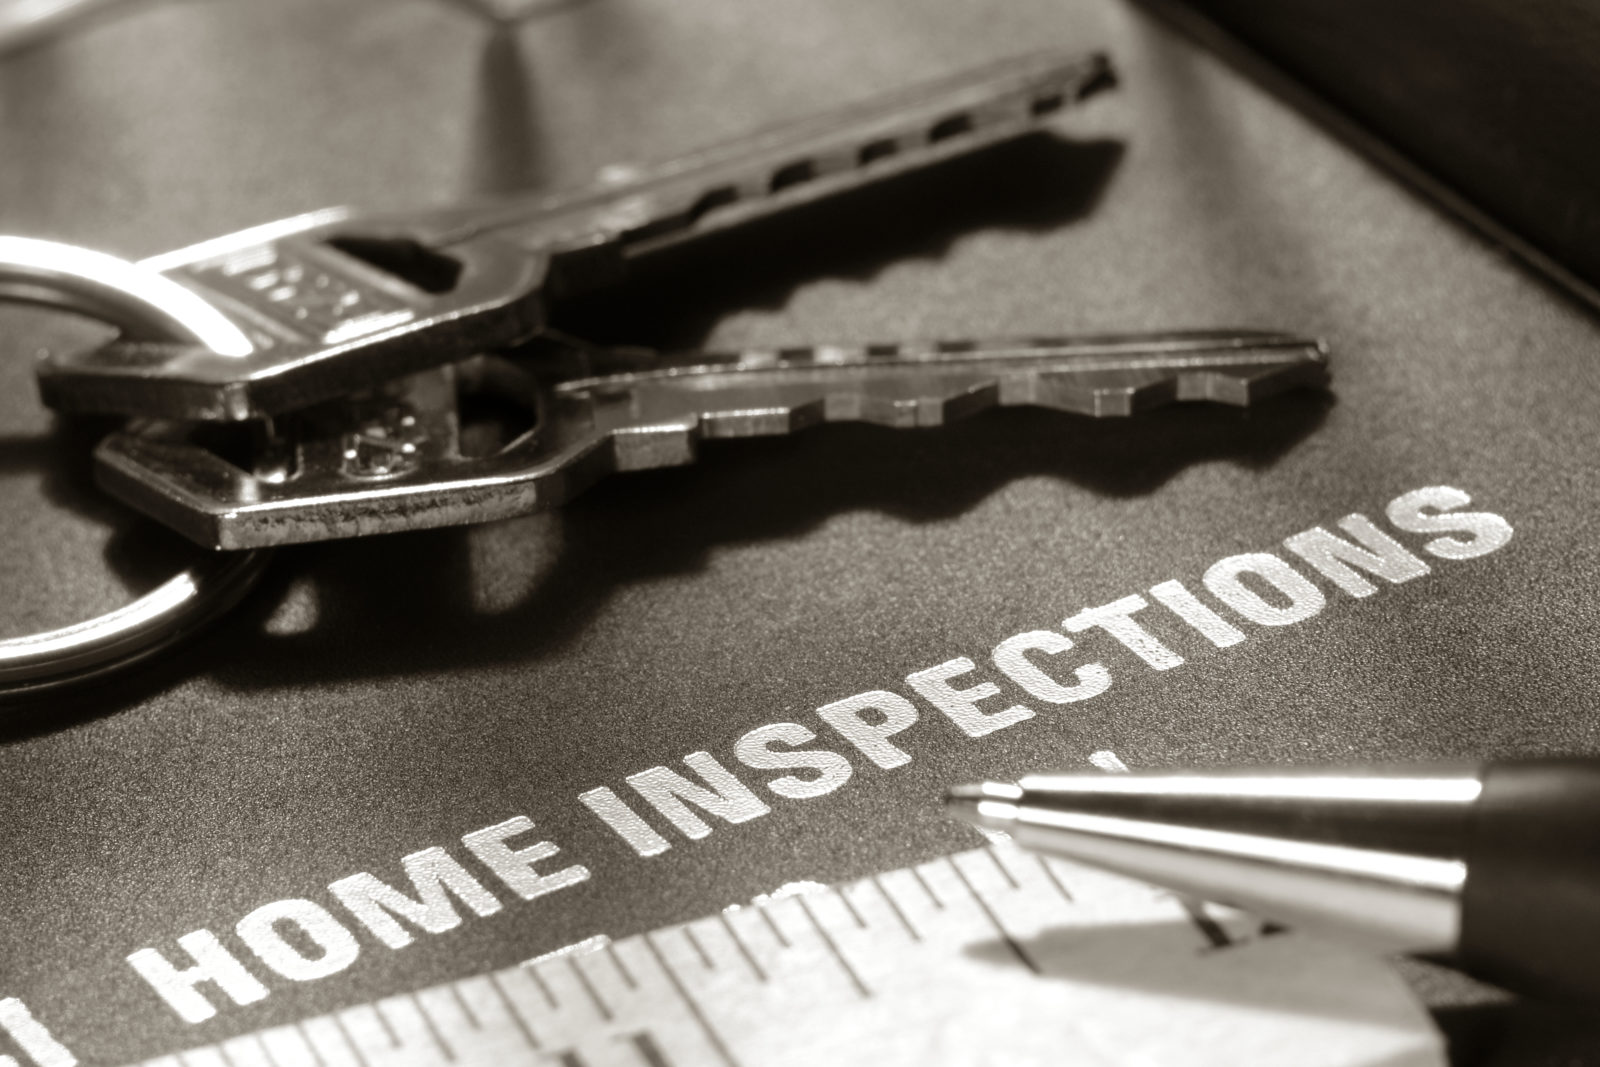 Real Estate Home Inspection Report - Superbroker.com